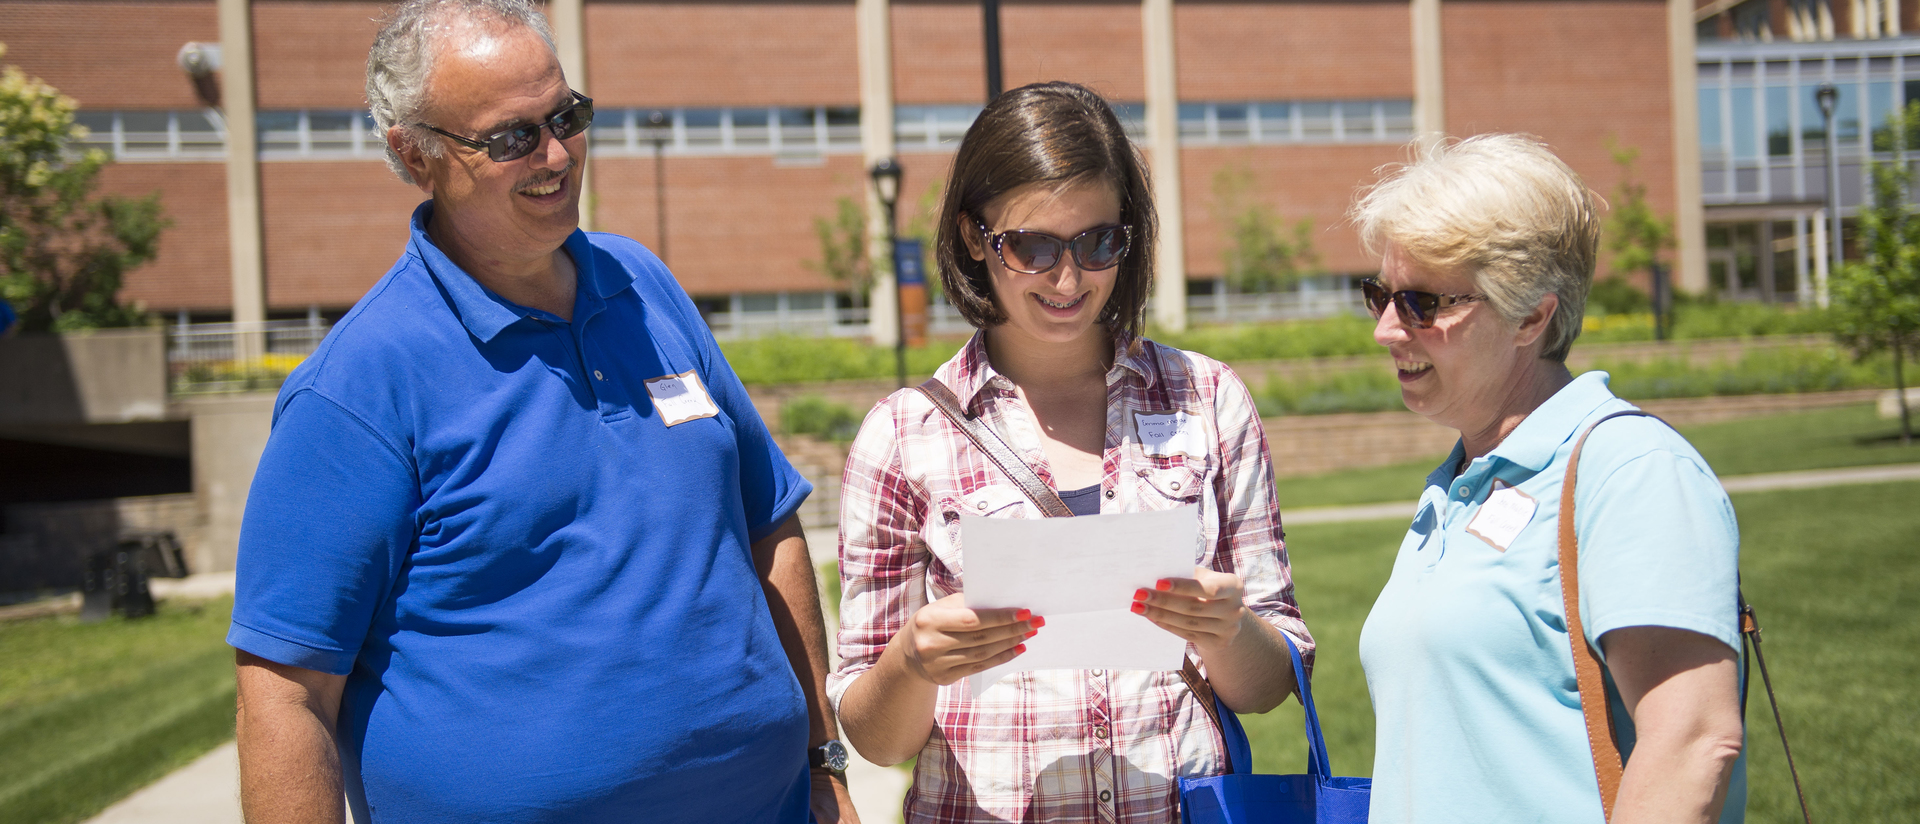 Parents and student on cmapus for orientation, outside on campus mall.